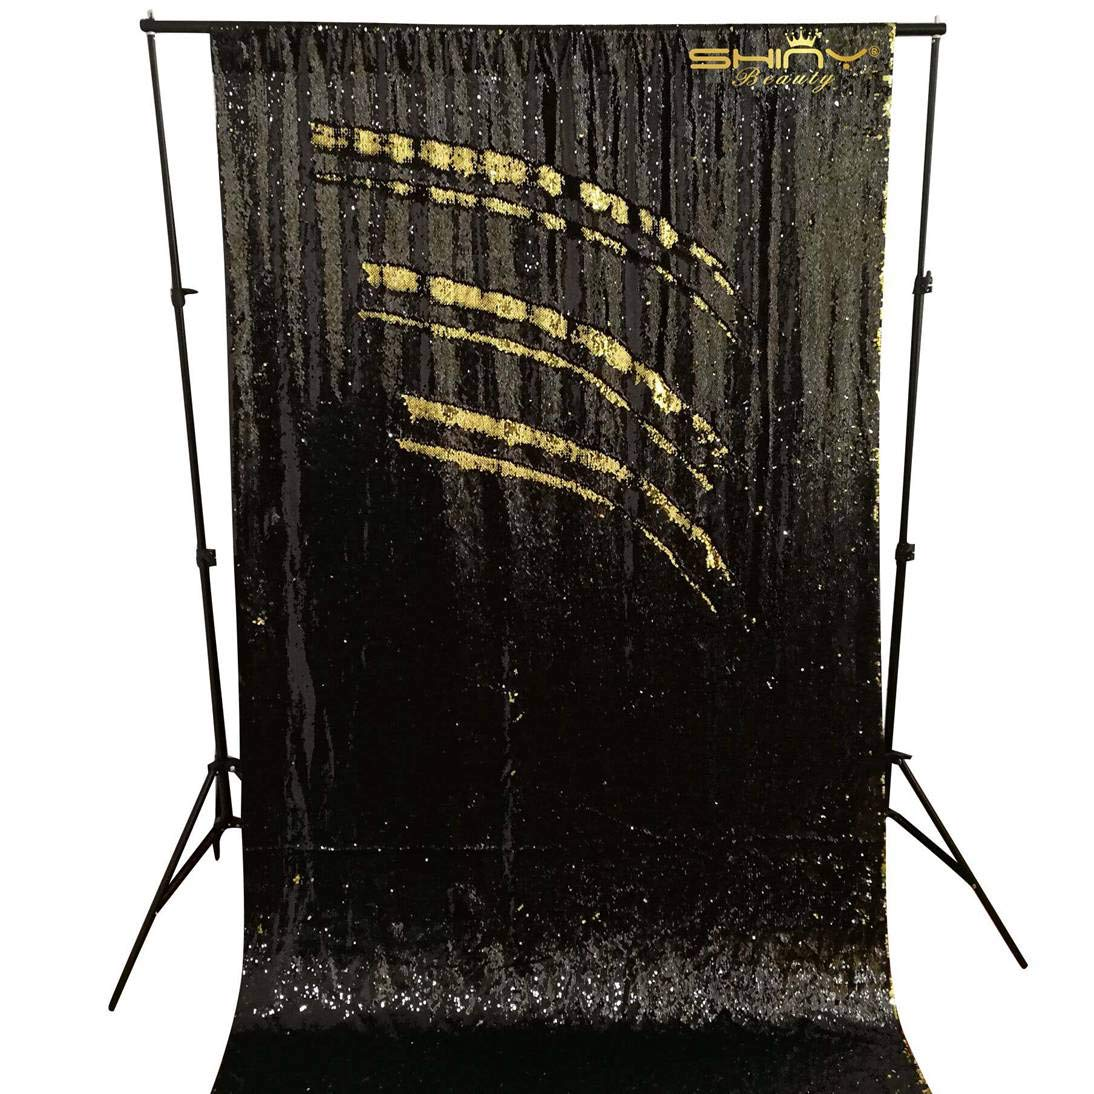 Mermaid Backdrops 20FTx10FT Reversable Gold&Black Shimmer Sequin Fabric Sewing Photography Backdrop Shower Curtain Set ~0906S